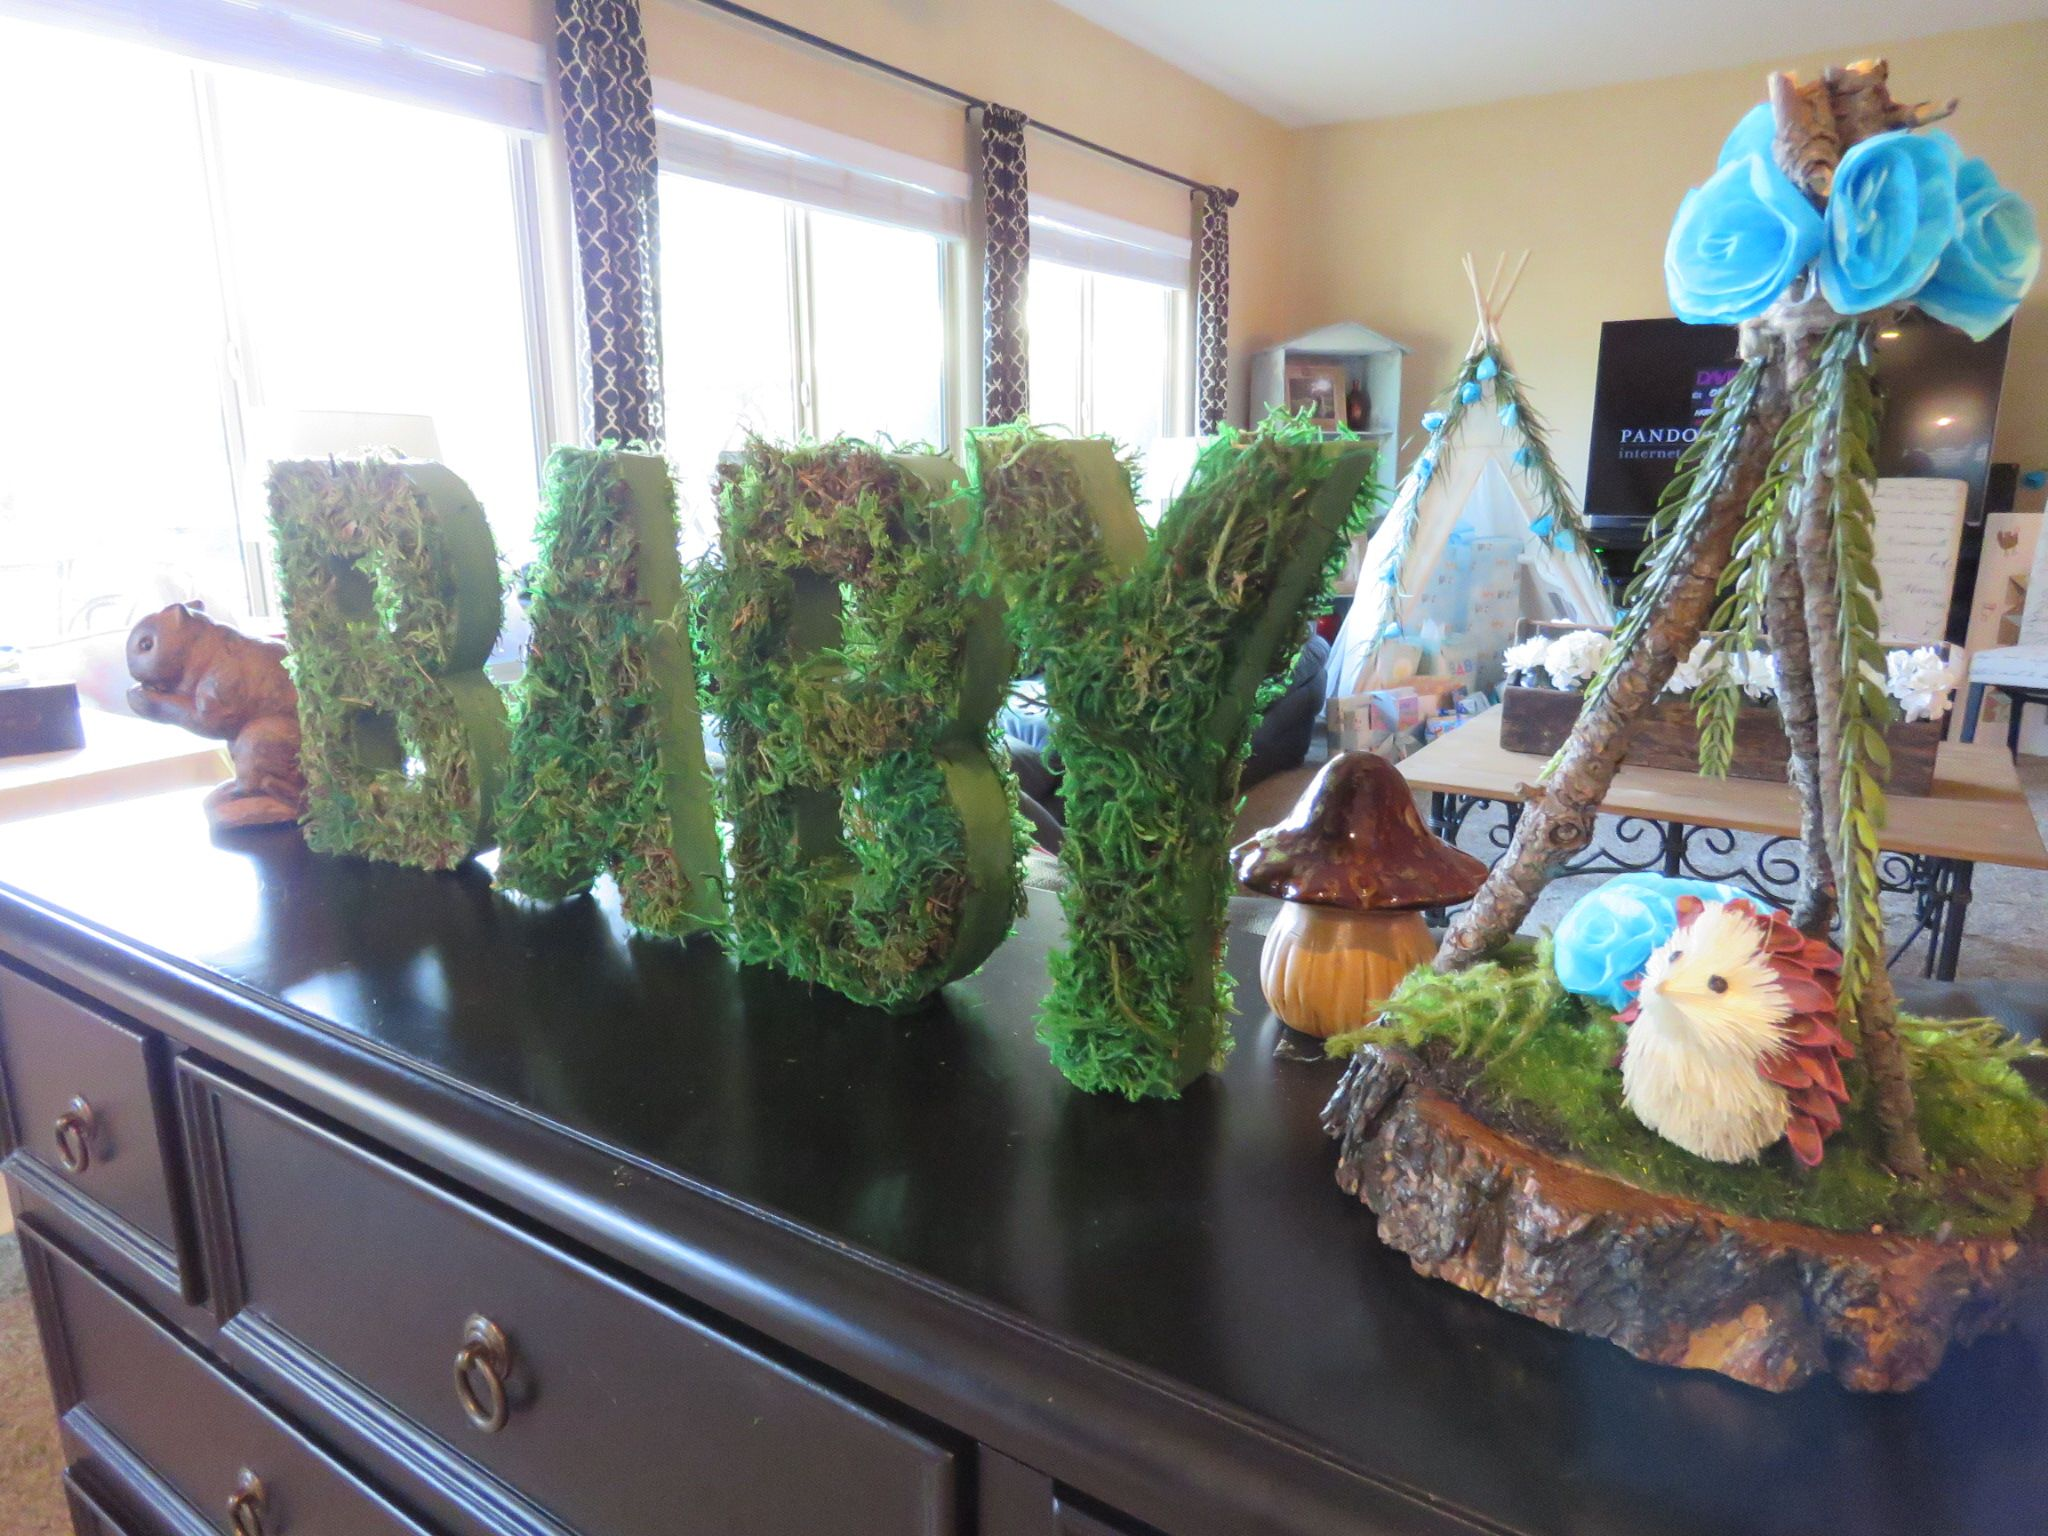 Mossy Letters For Woodland Baby Shower | Party Stuff | Pinterest